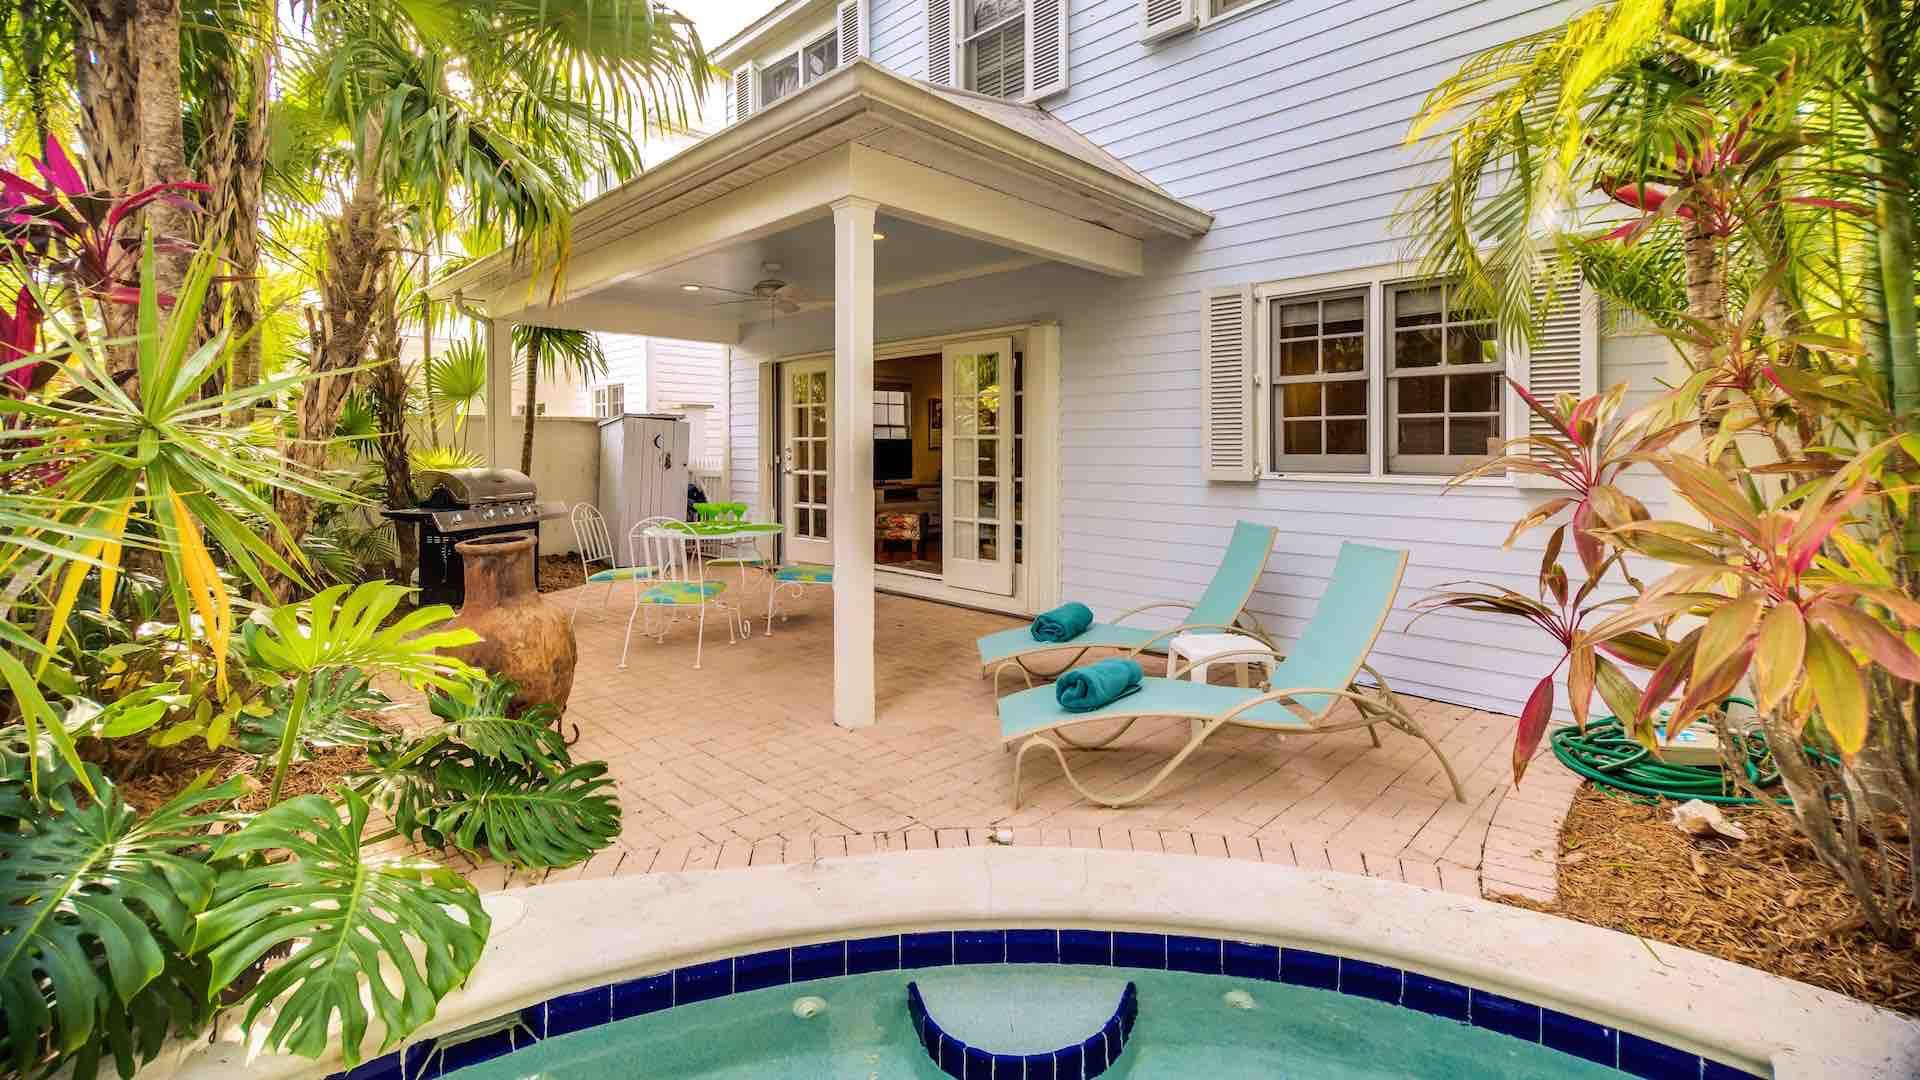 The home has a private pool and backyard area...